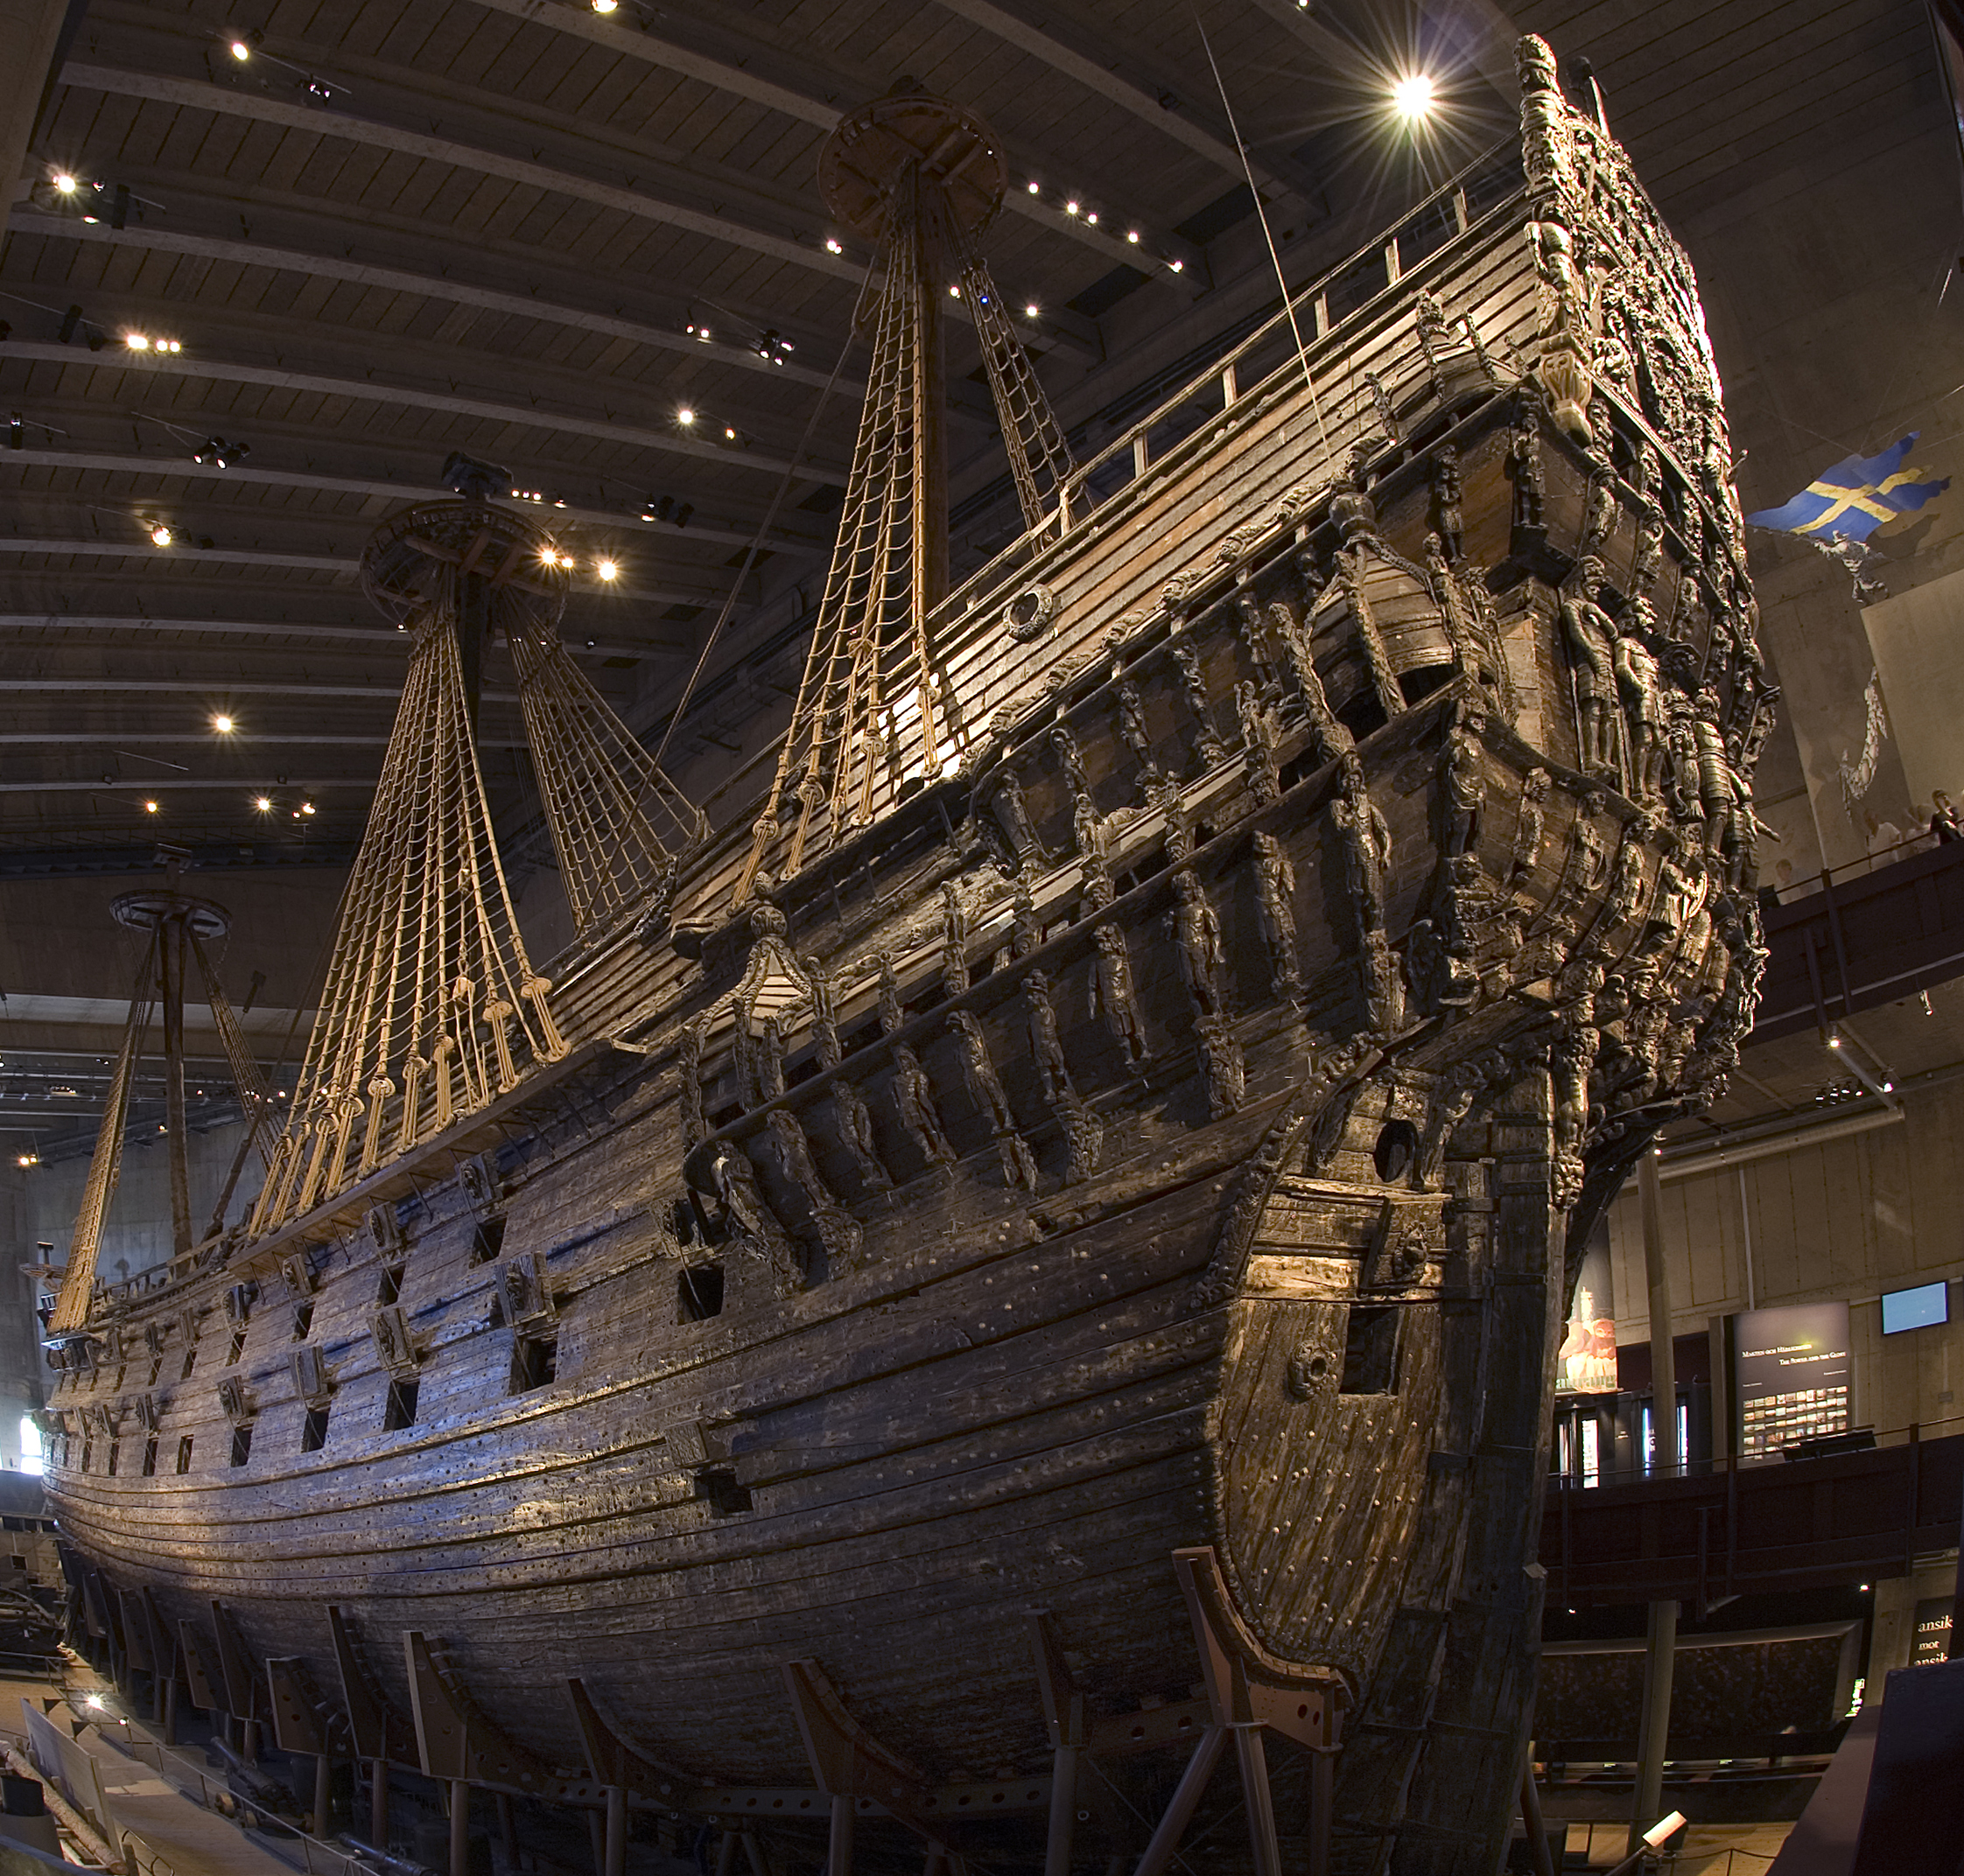 https://i2.wp.com/www.thehistoryblog.com/wp-content/uploads/2014/10/The_Vasa_ship_-02-.jpg